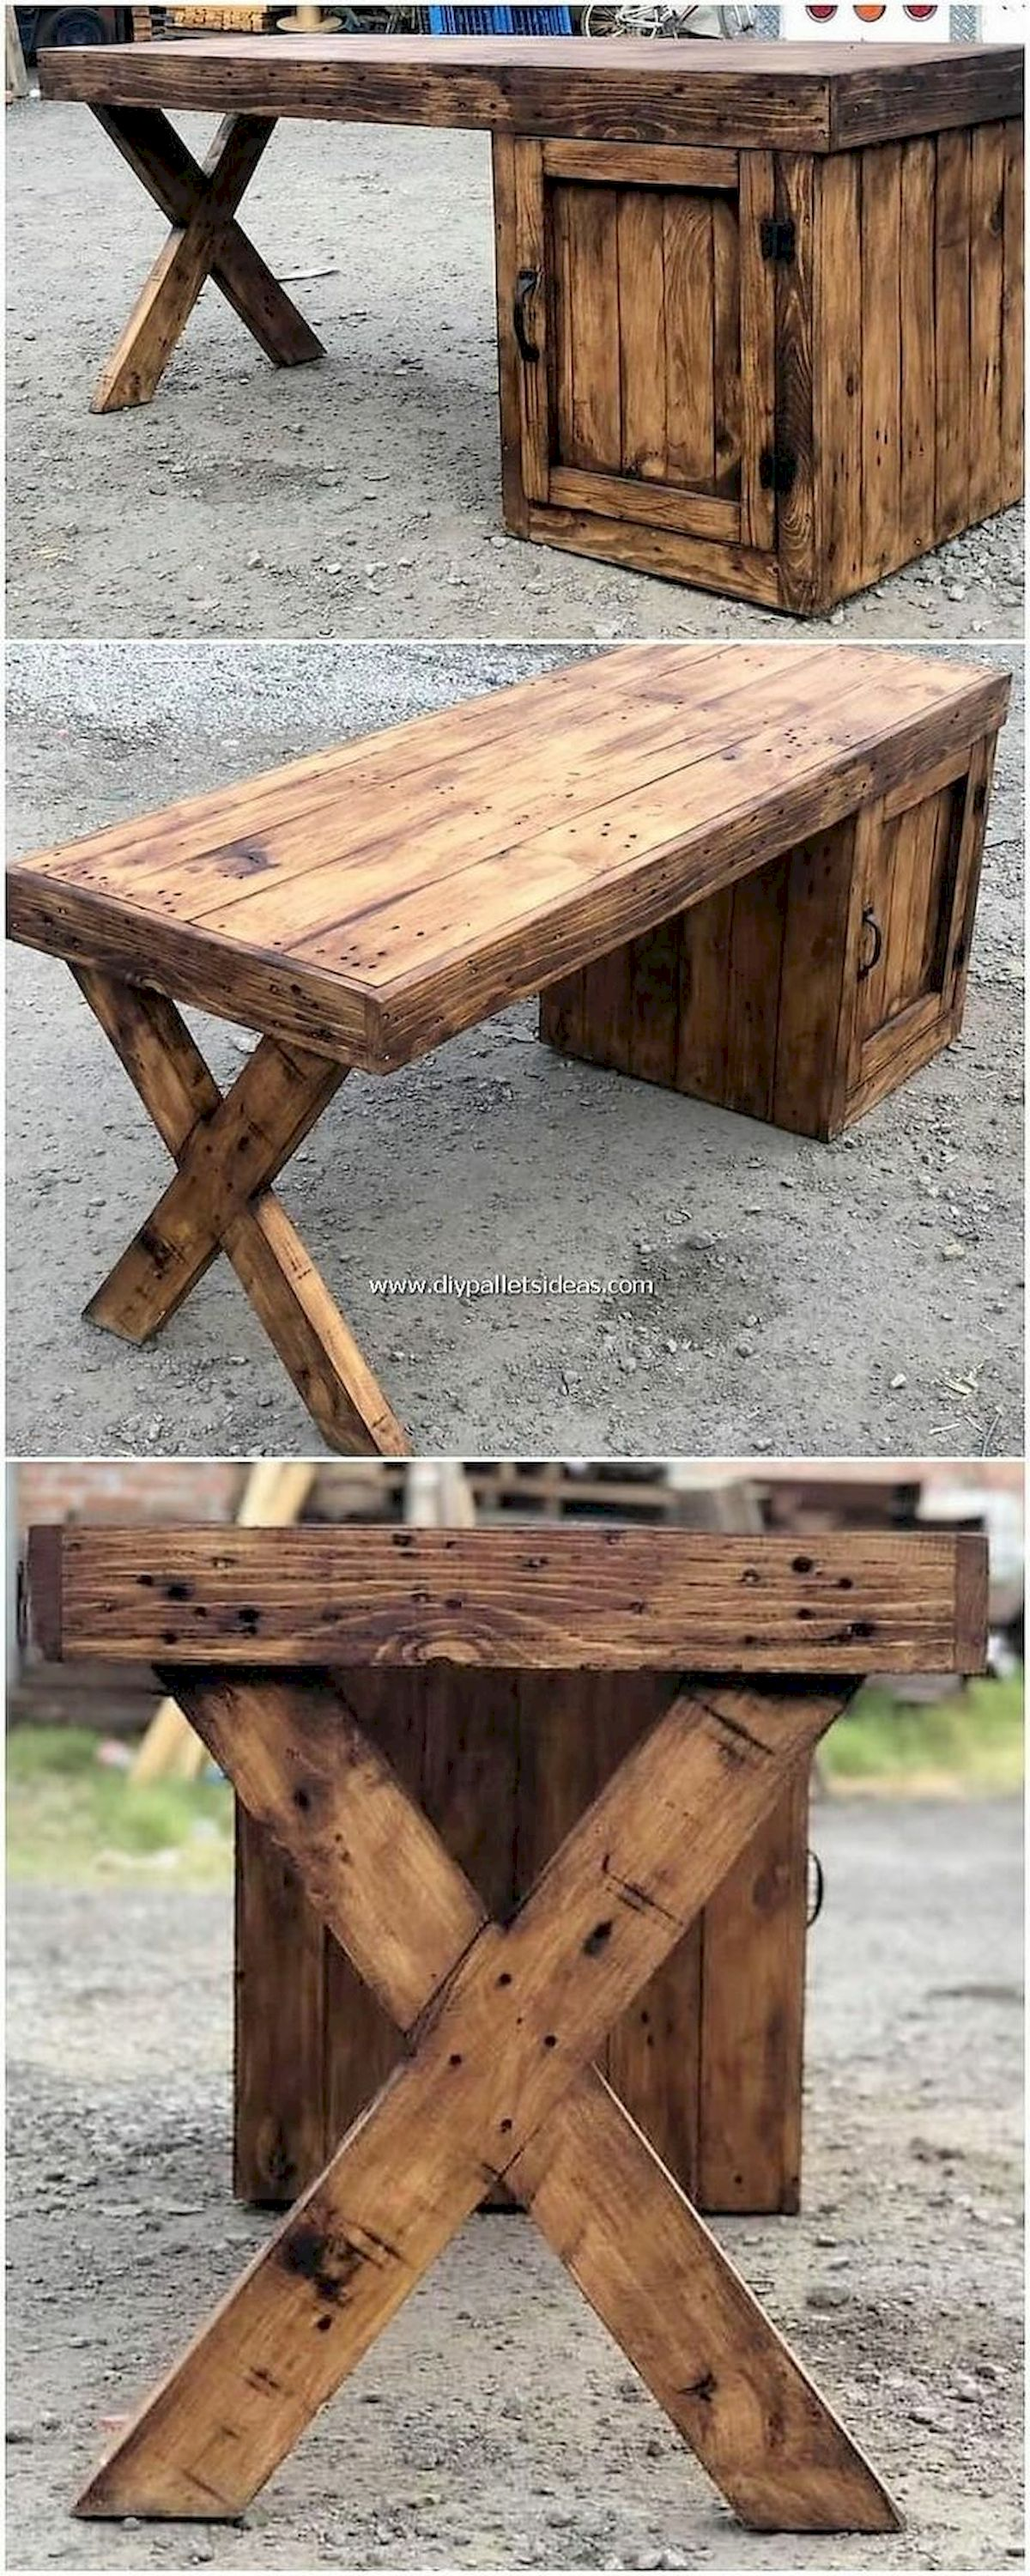 60 Easy DIY Wood Furniture Projects Ideas (19)